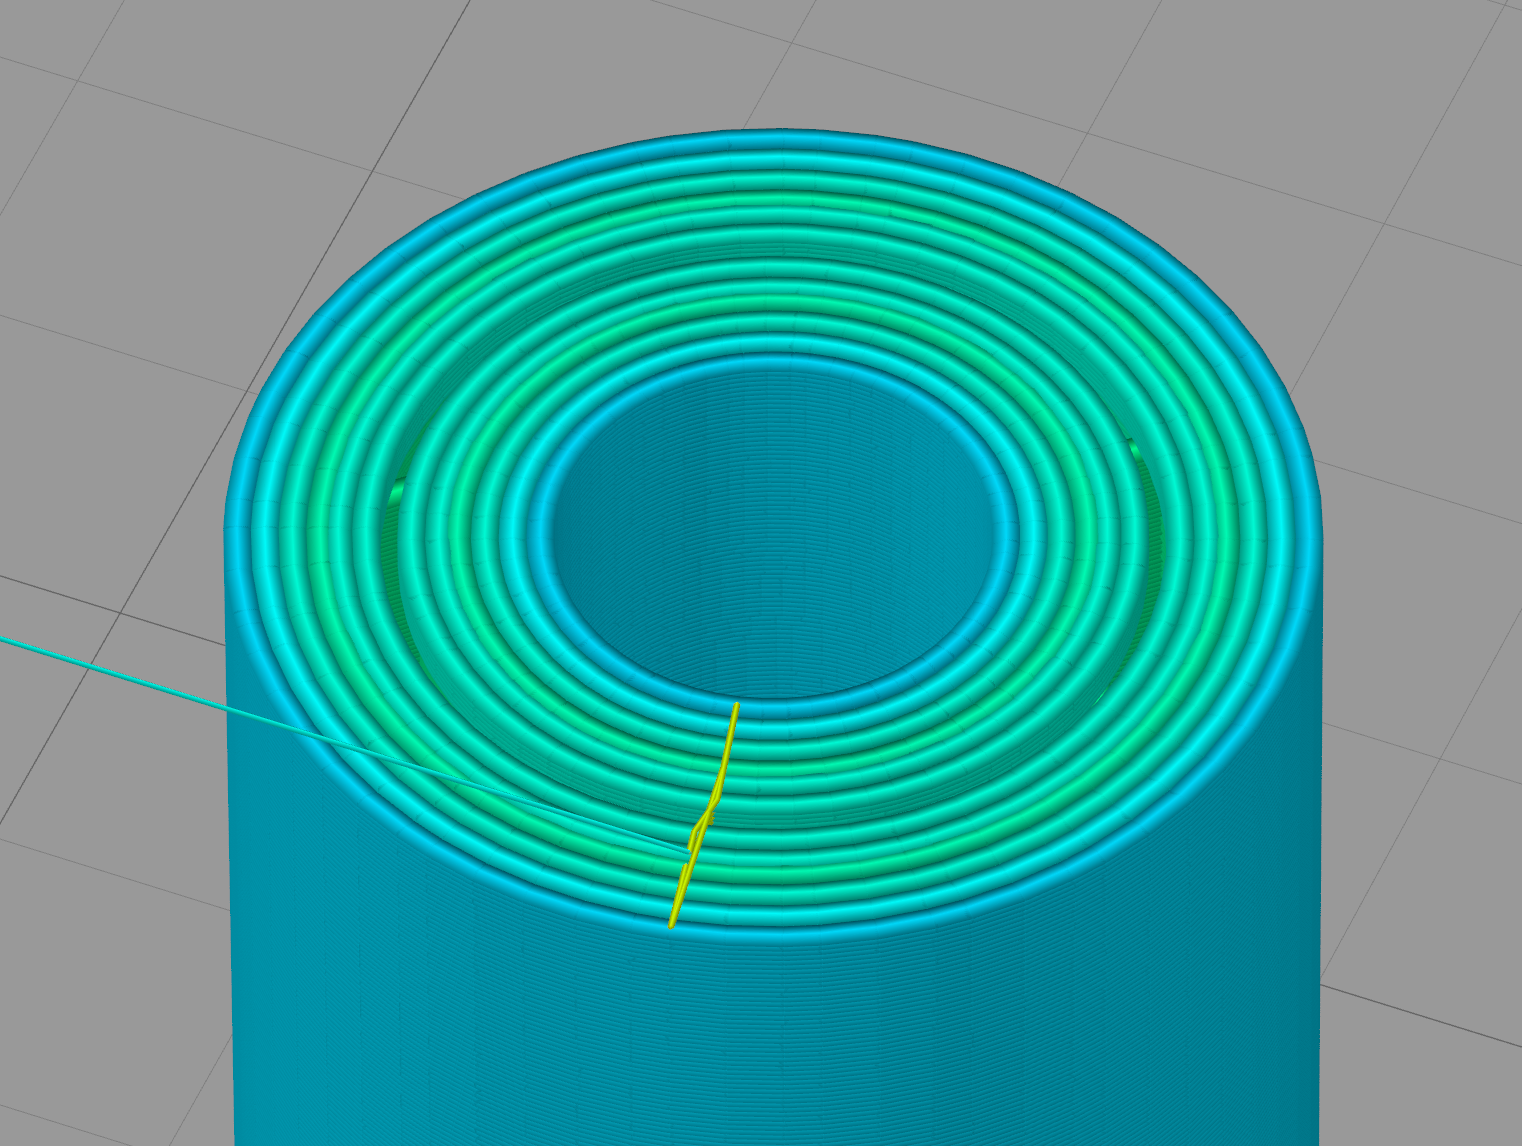 Concentric fill keeps skipping the inner line - Help, Tips